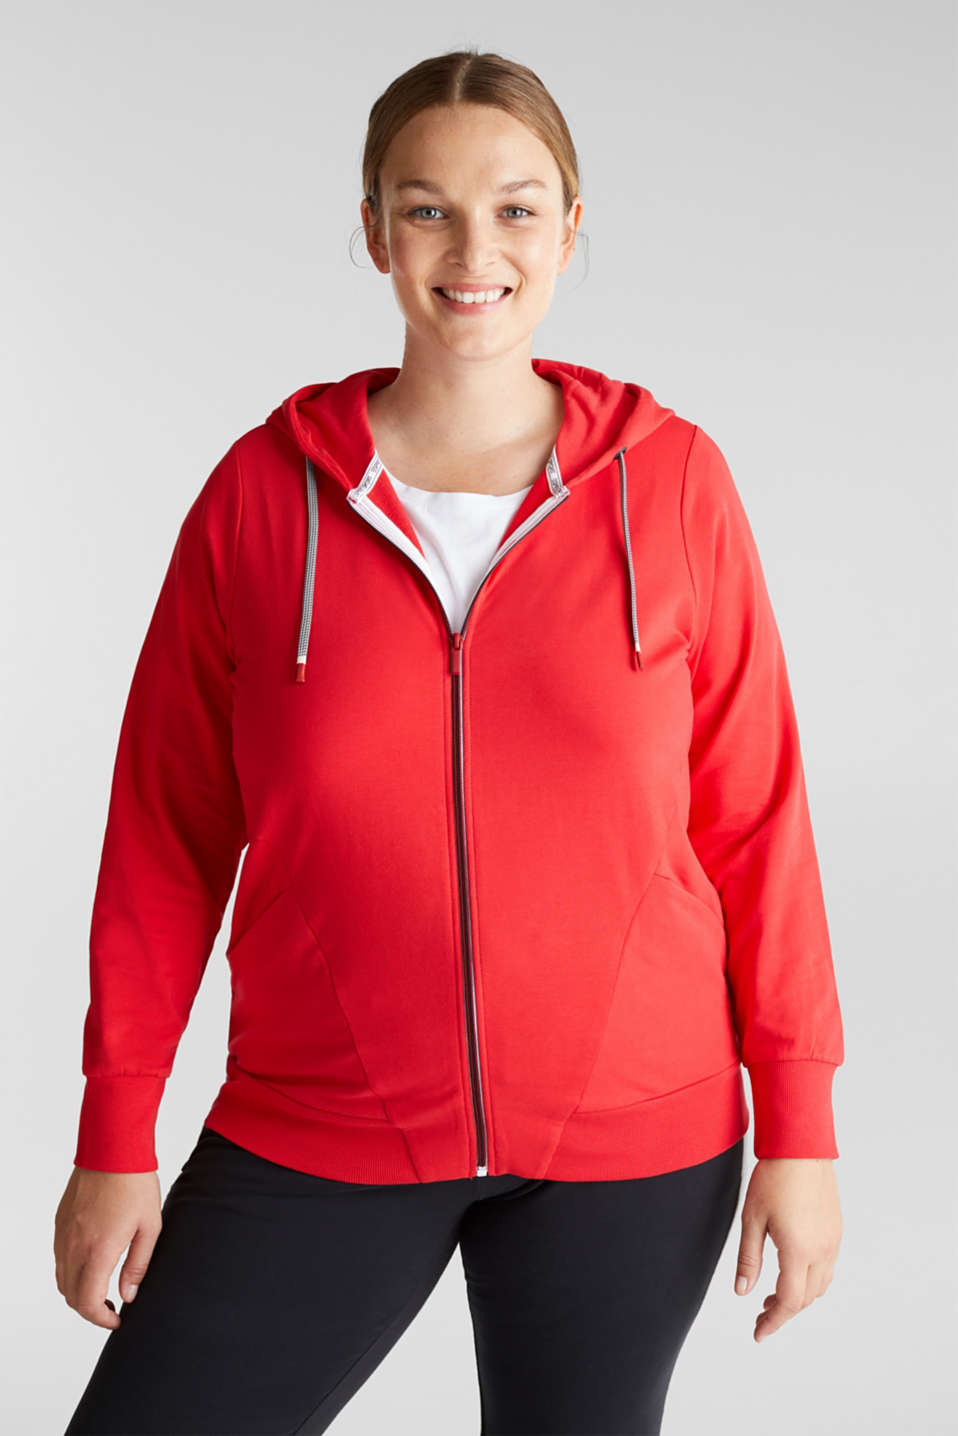 Esprit - CURVY hoodie with stretch for comfort